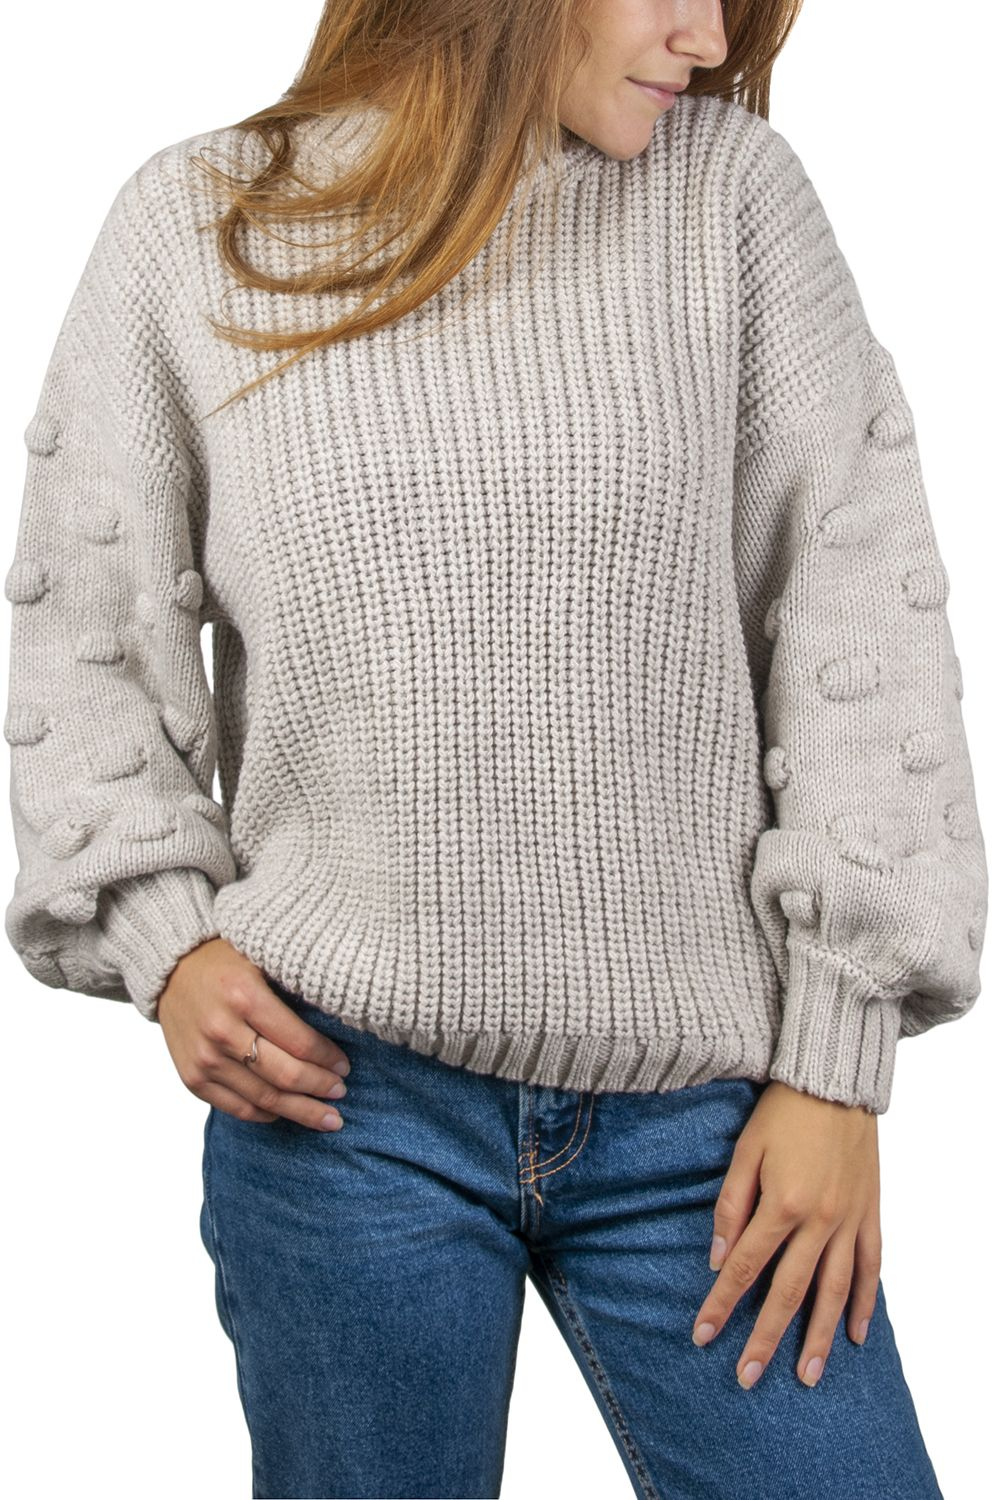 Ericeira Surf Skate Sweater BUBBLE Beige